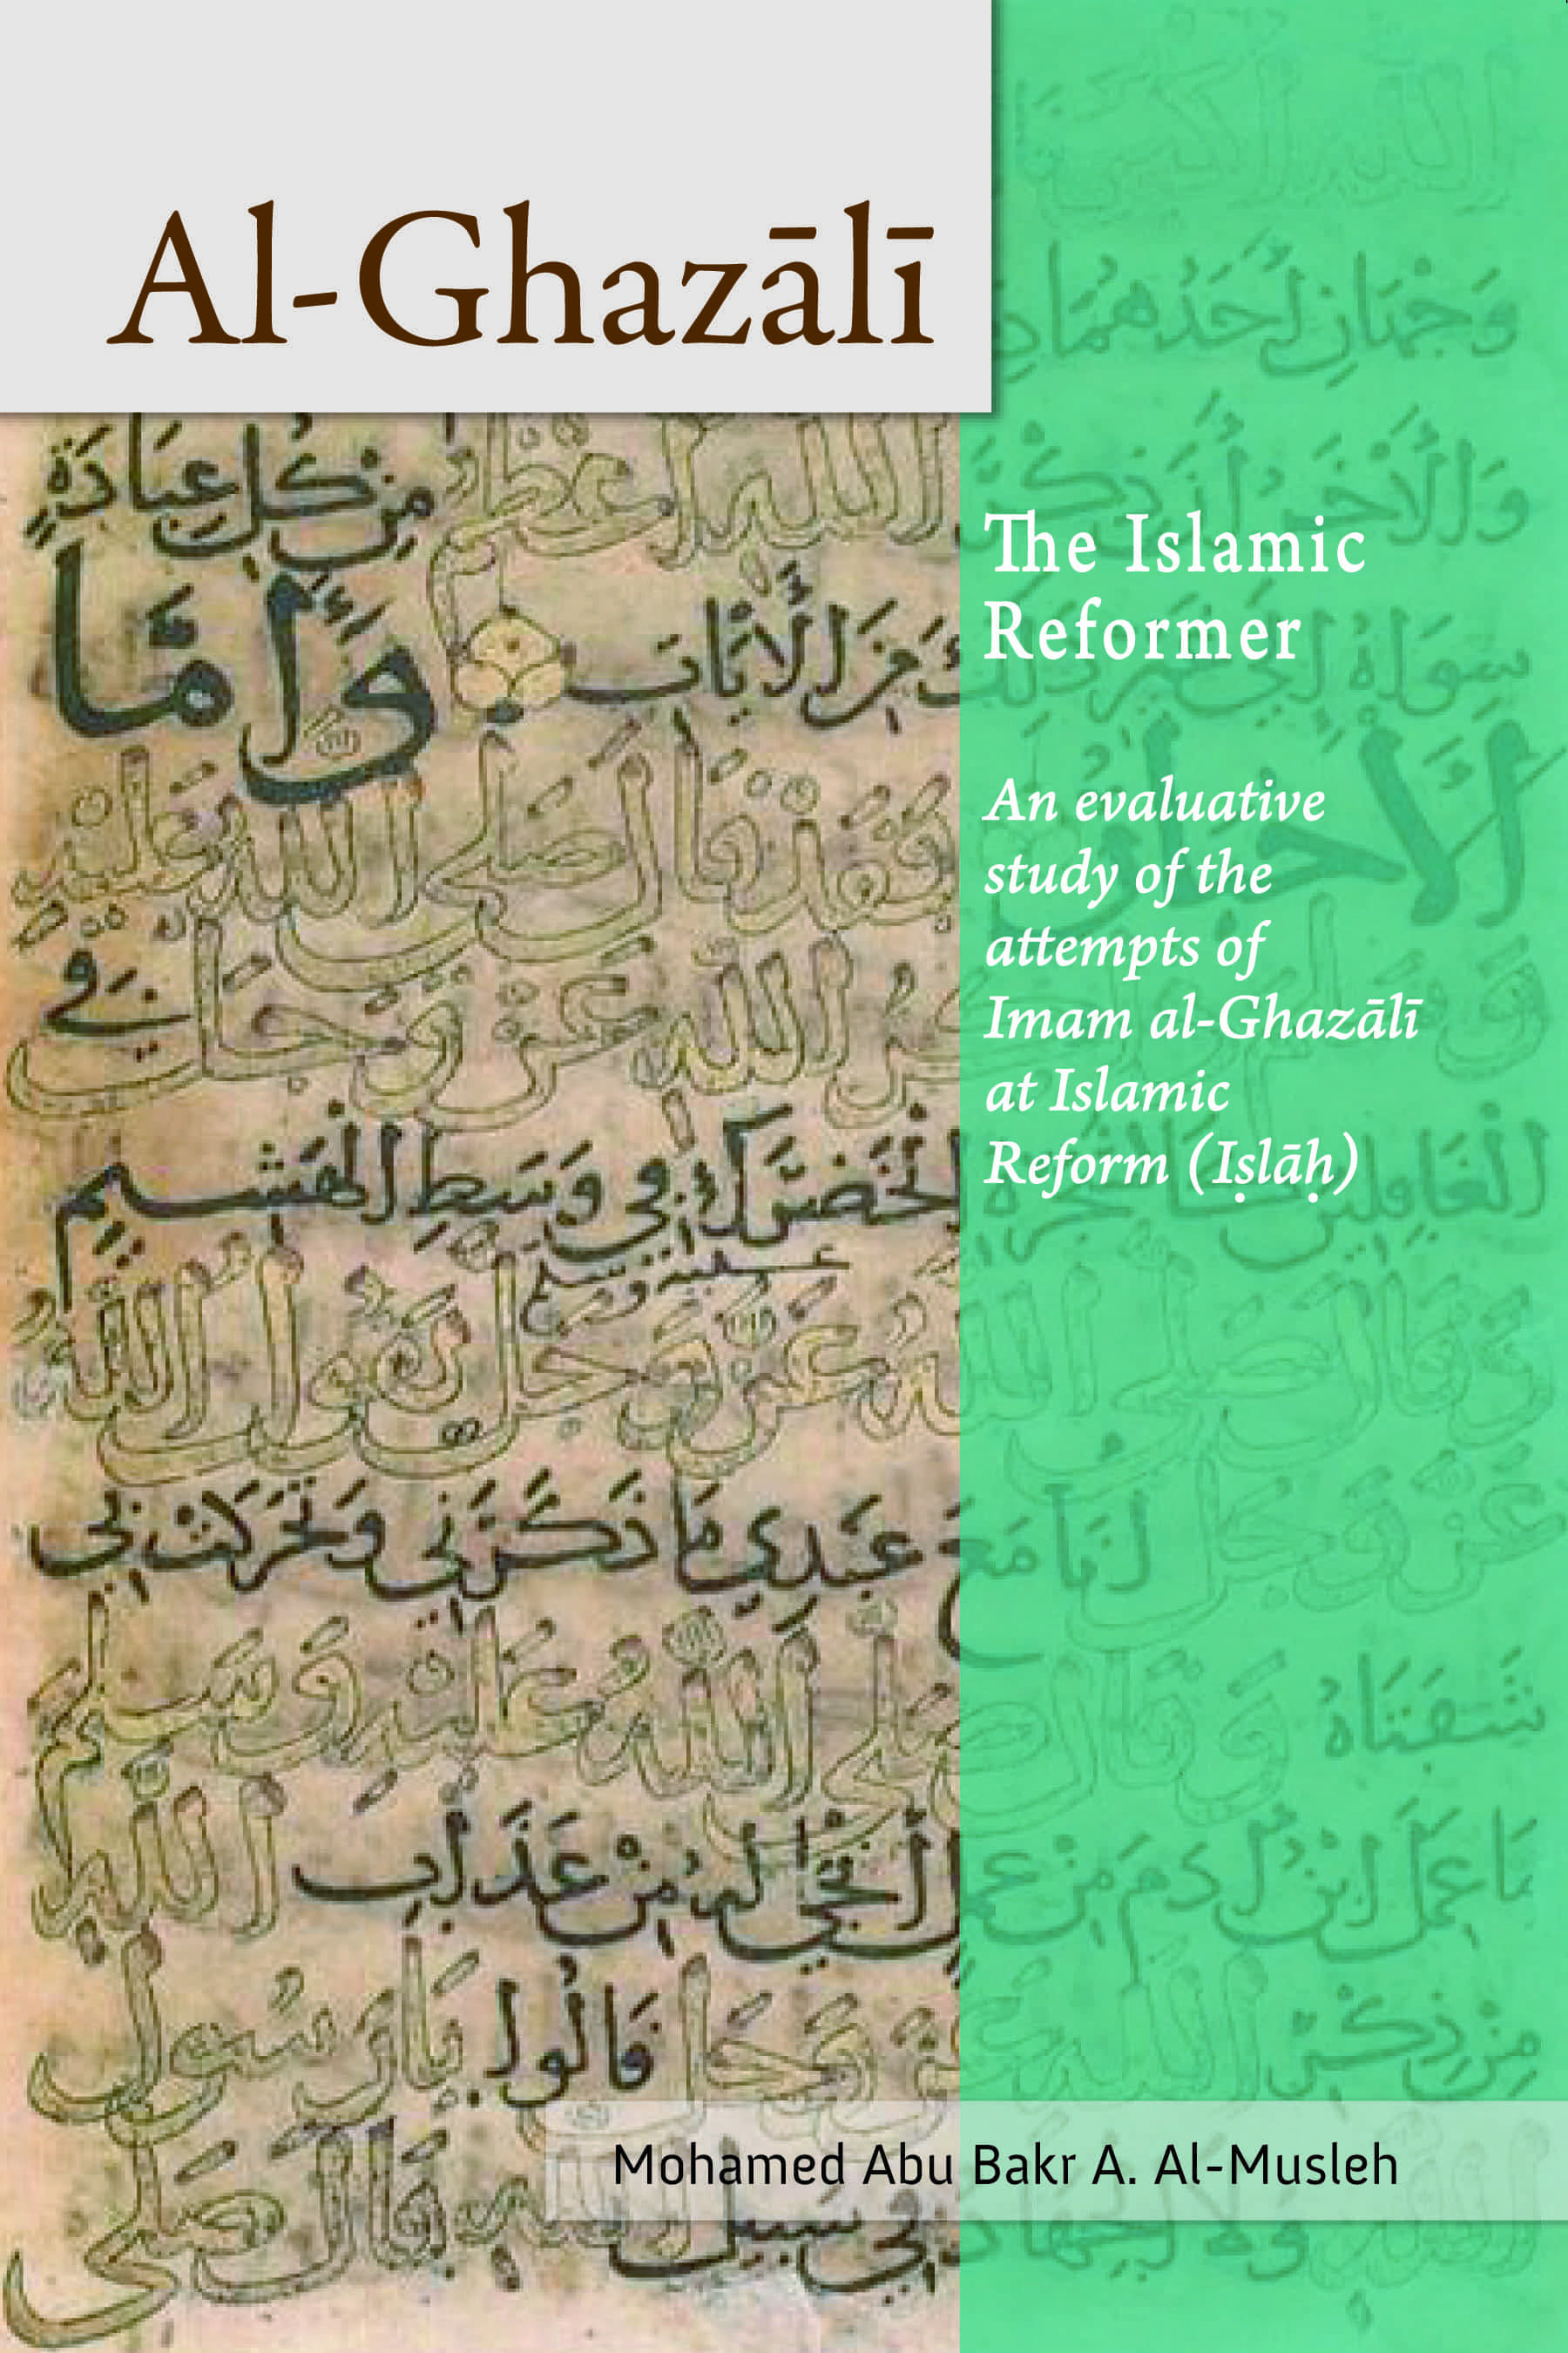 Al-Ghazali the Islamic Reformer